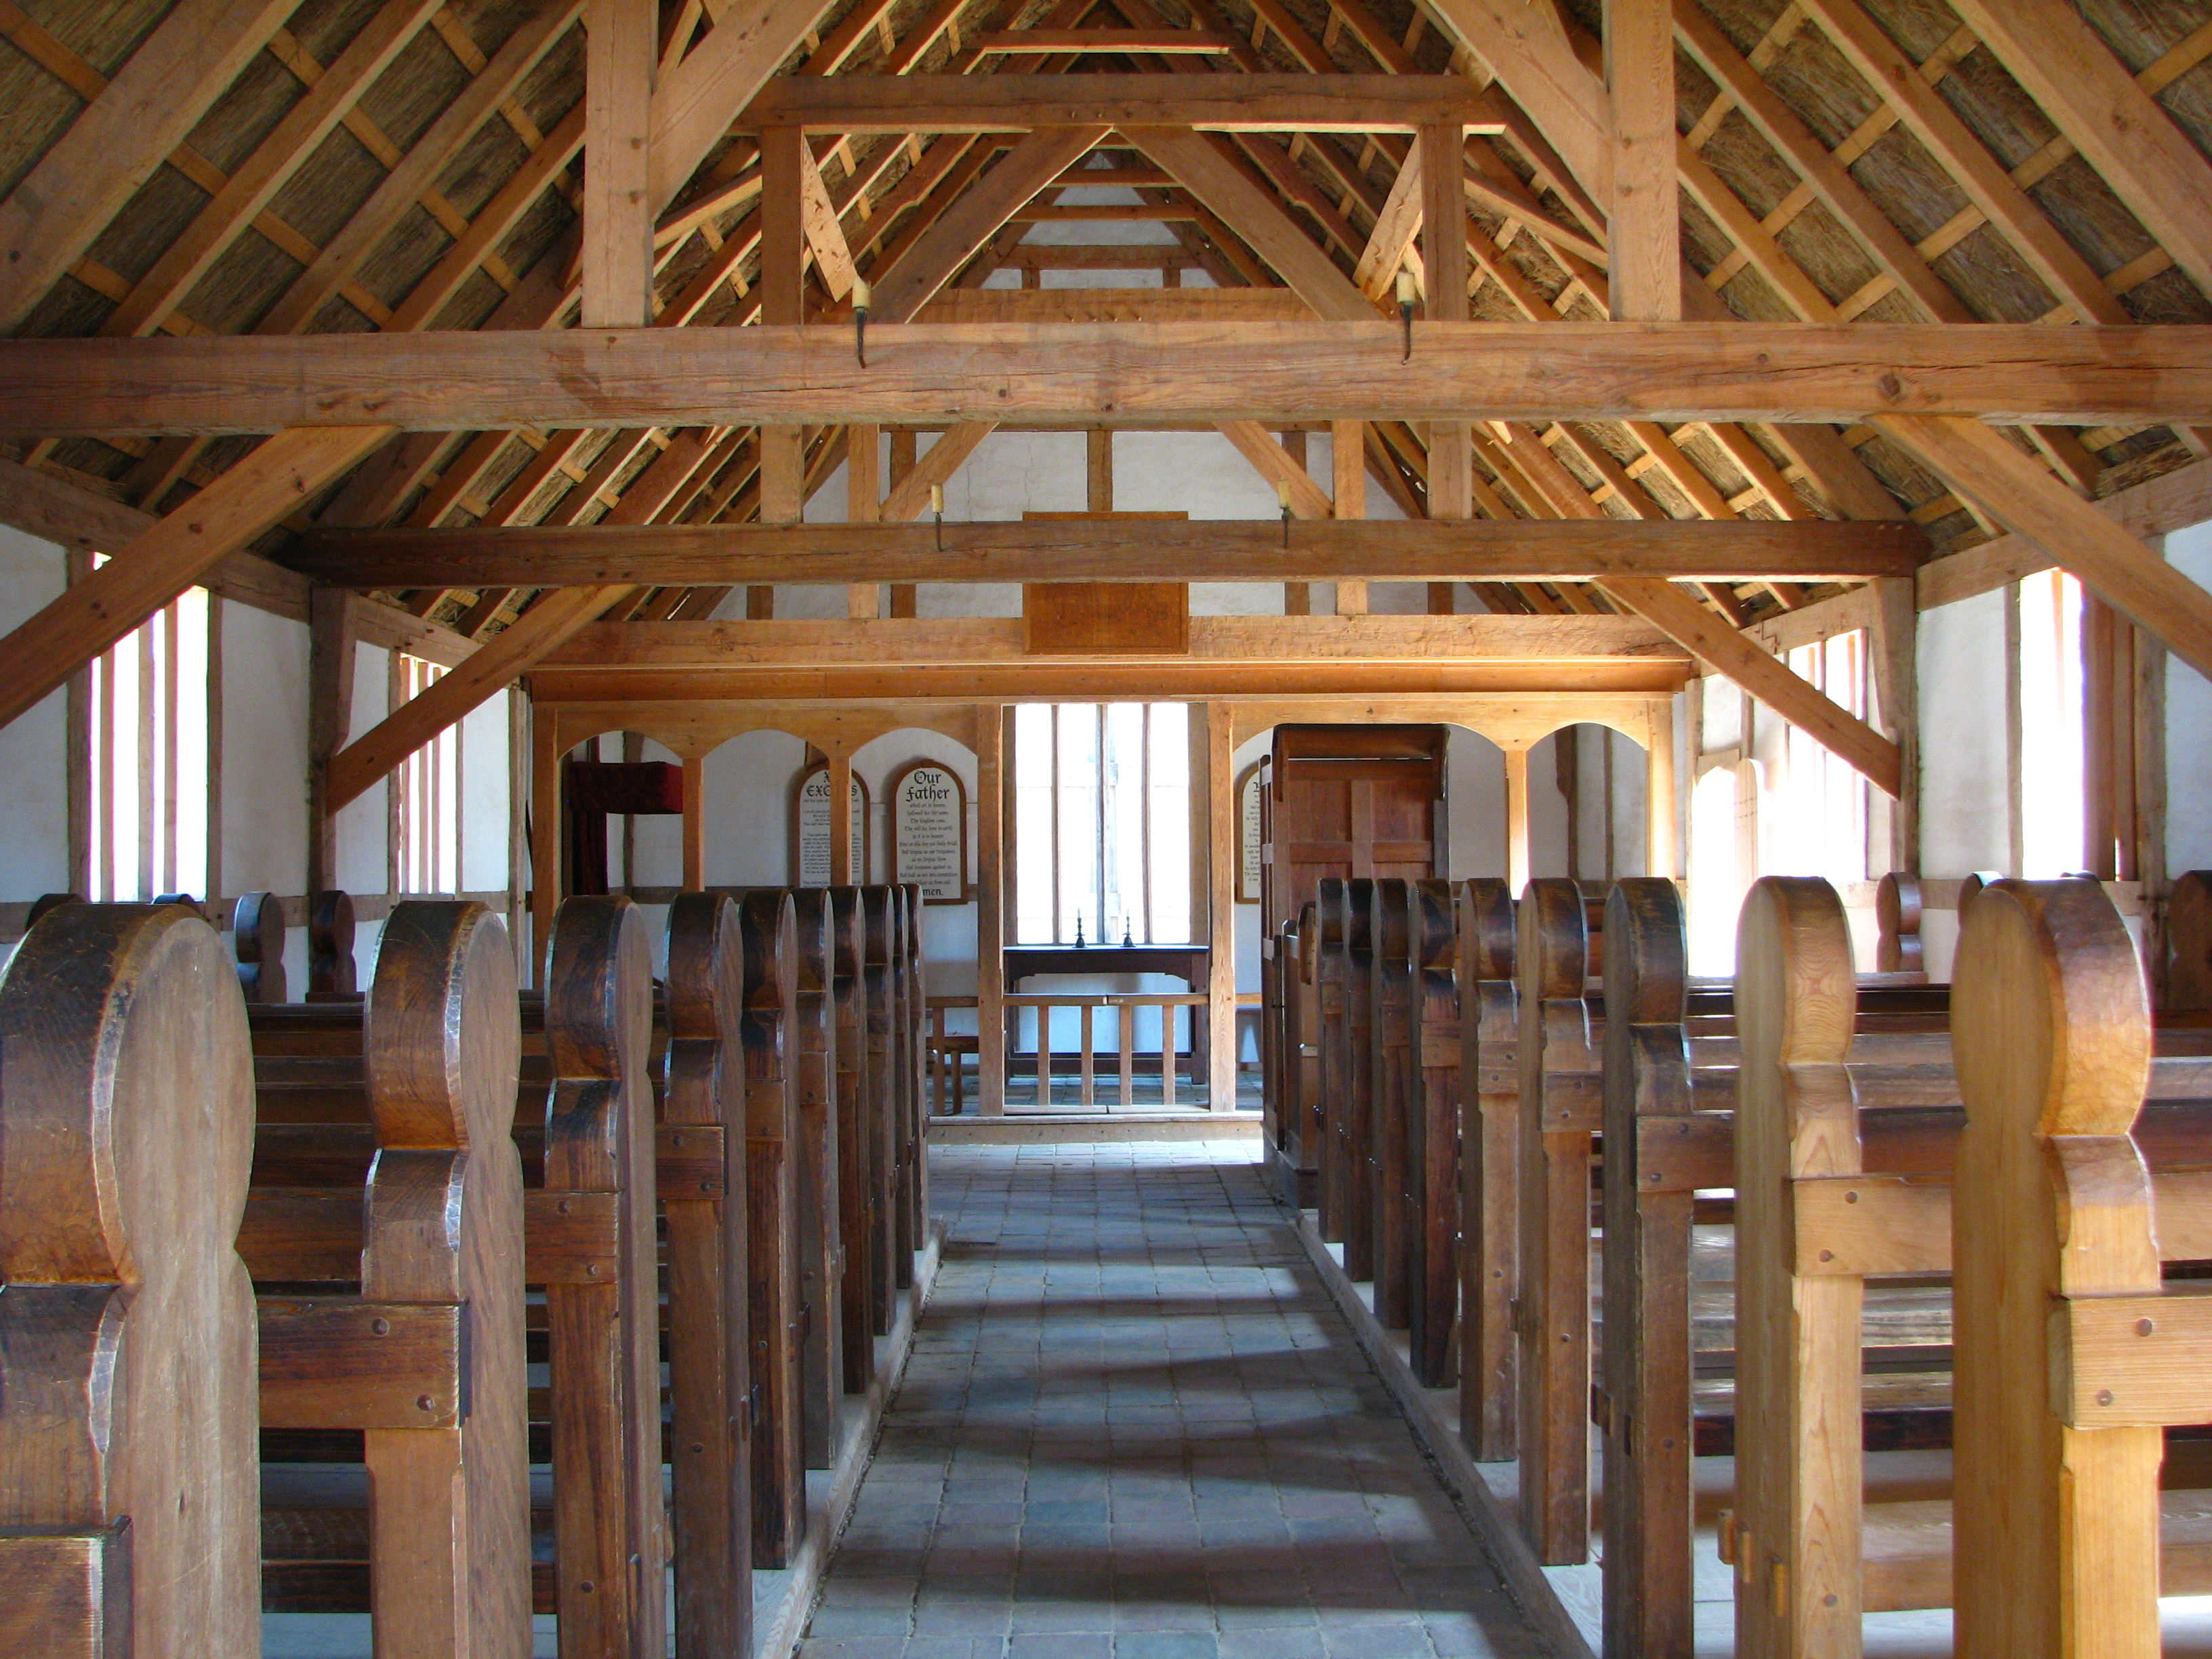 Interior of recreated Jamestown Settlement Church by Catherine on Wikimedia Commons (CC BY-SA